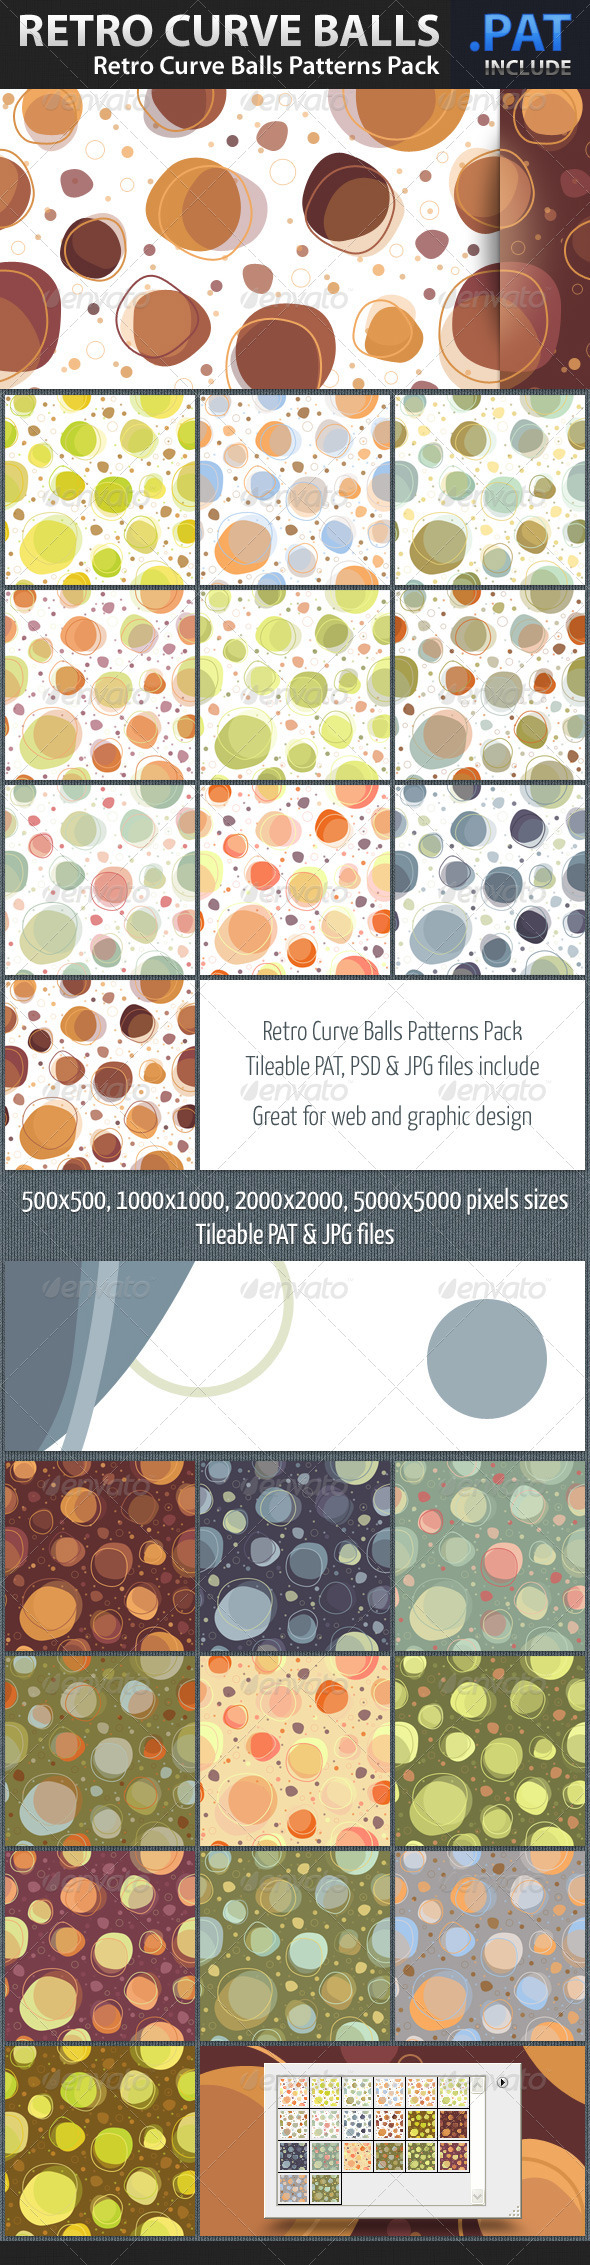 Retro Curve Balls Patterns - Art Textures